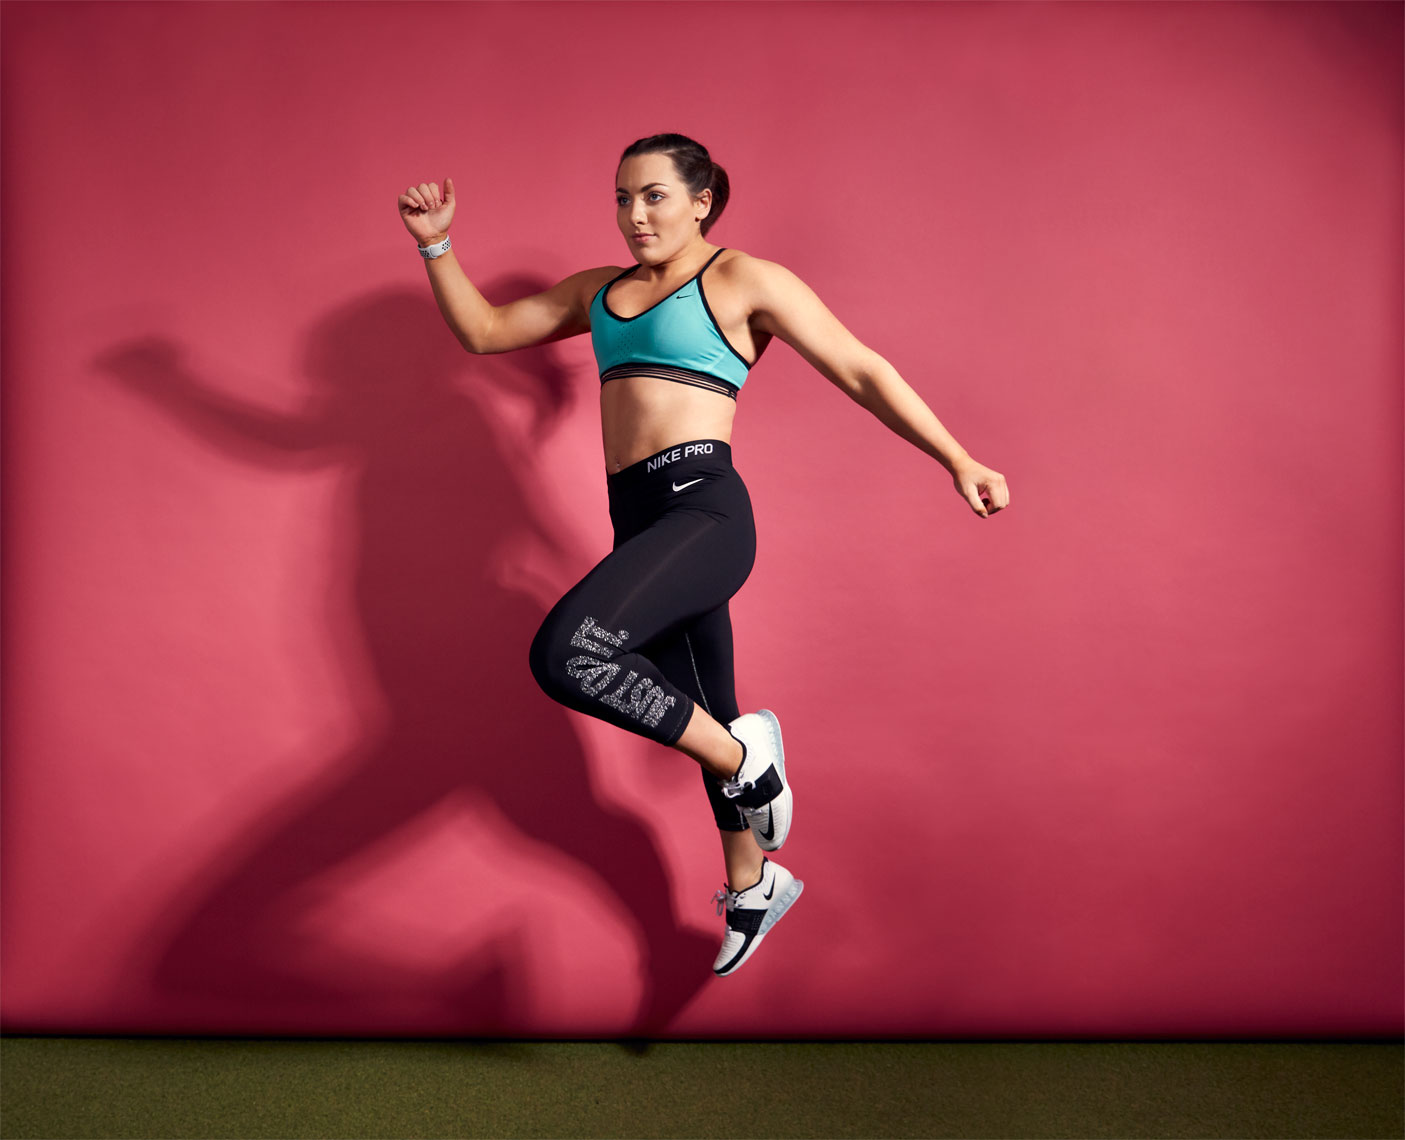 female crossfit athlete jumps against pink wall